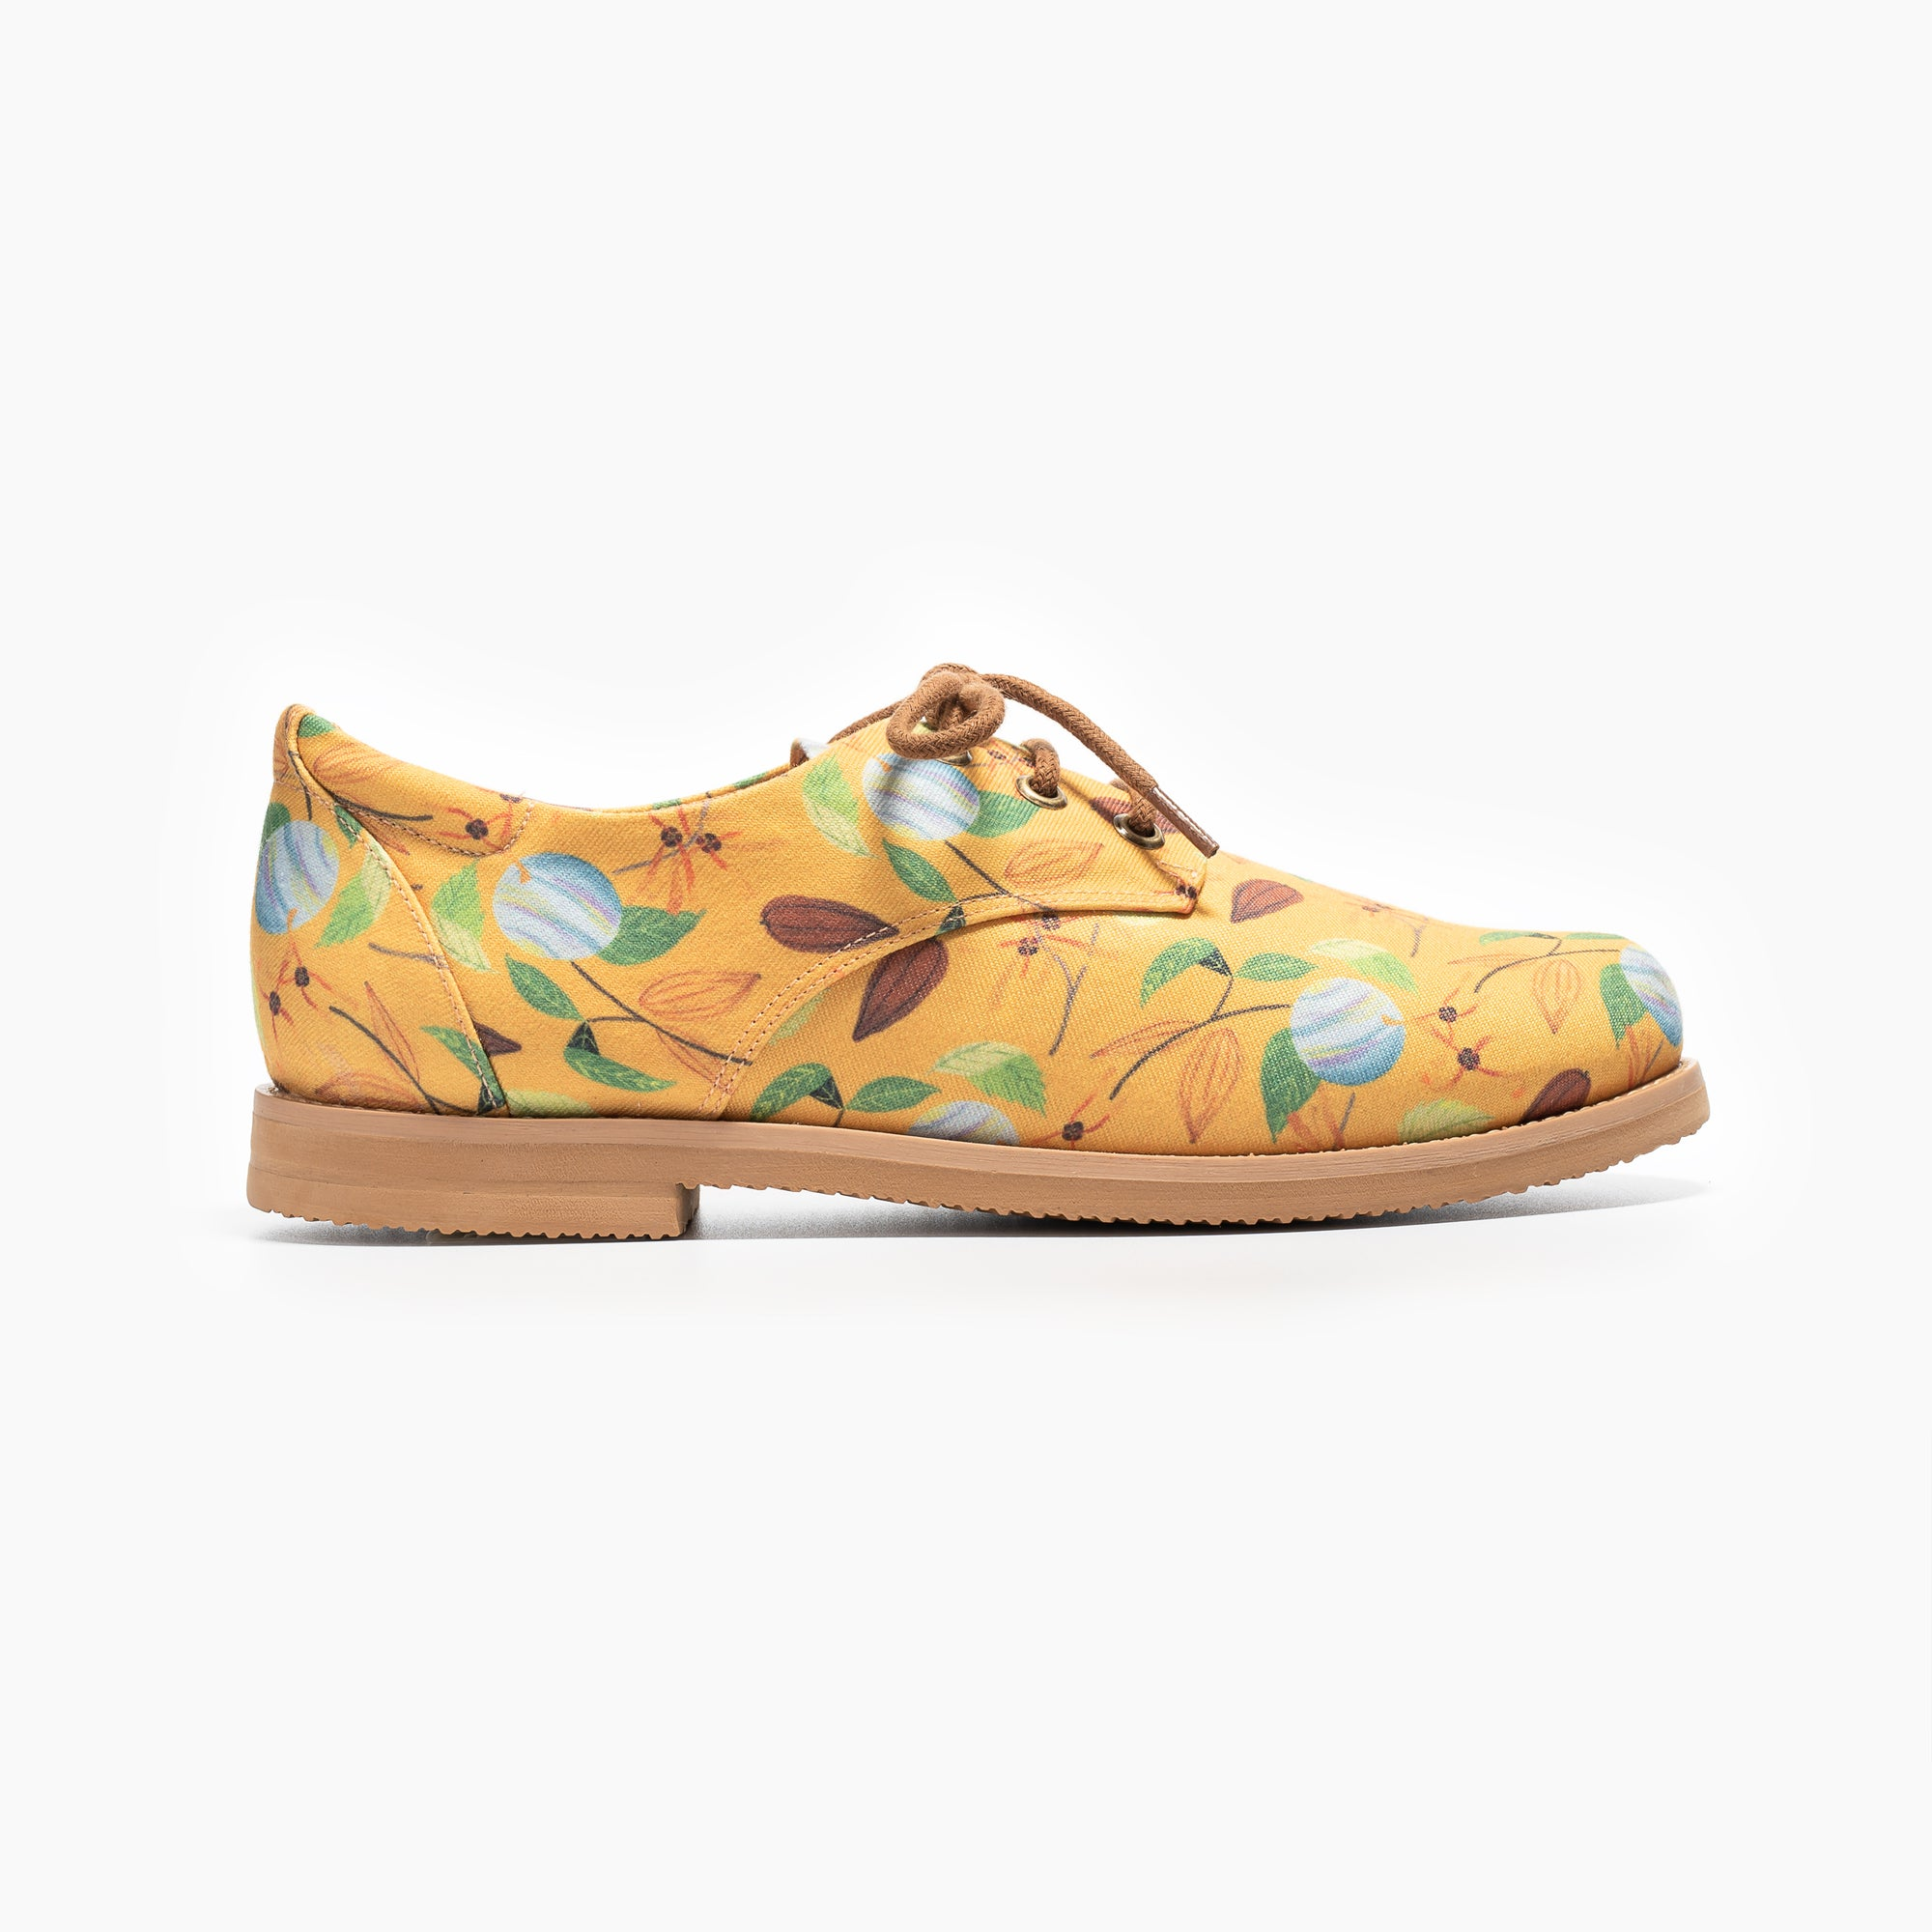 AQUARIUS OXFORD - Insecta Shoes